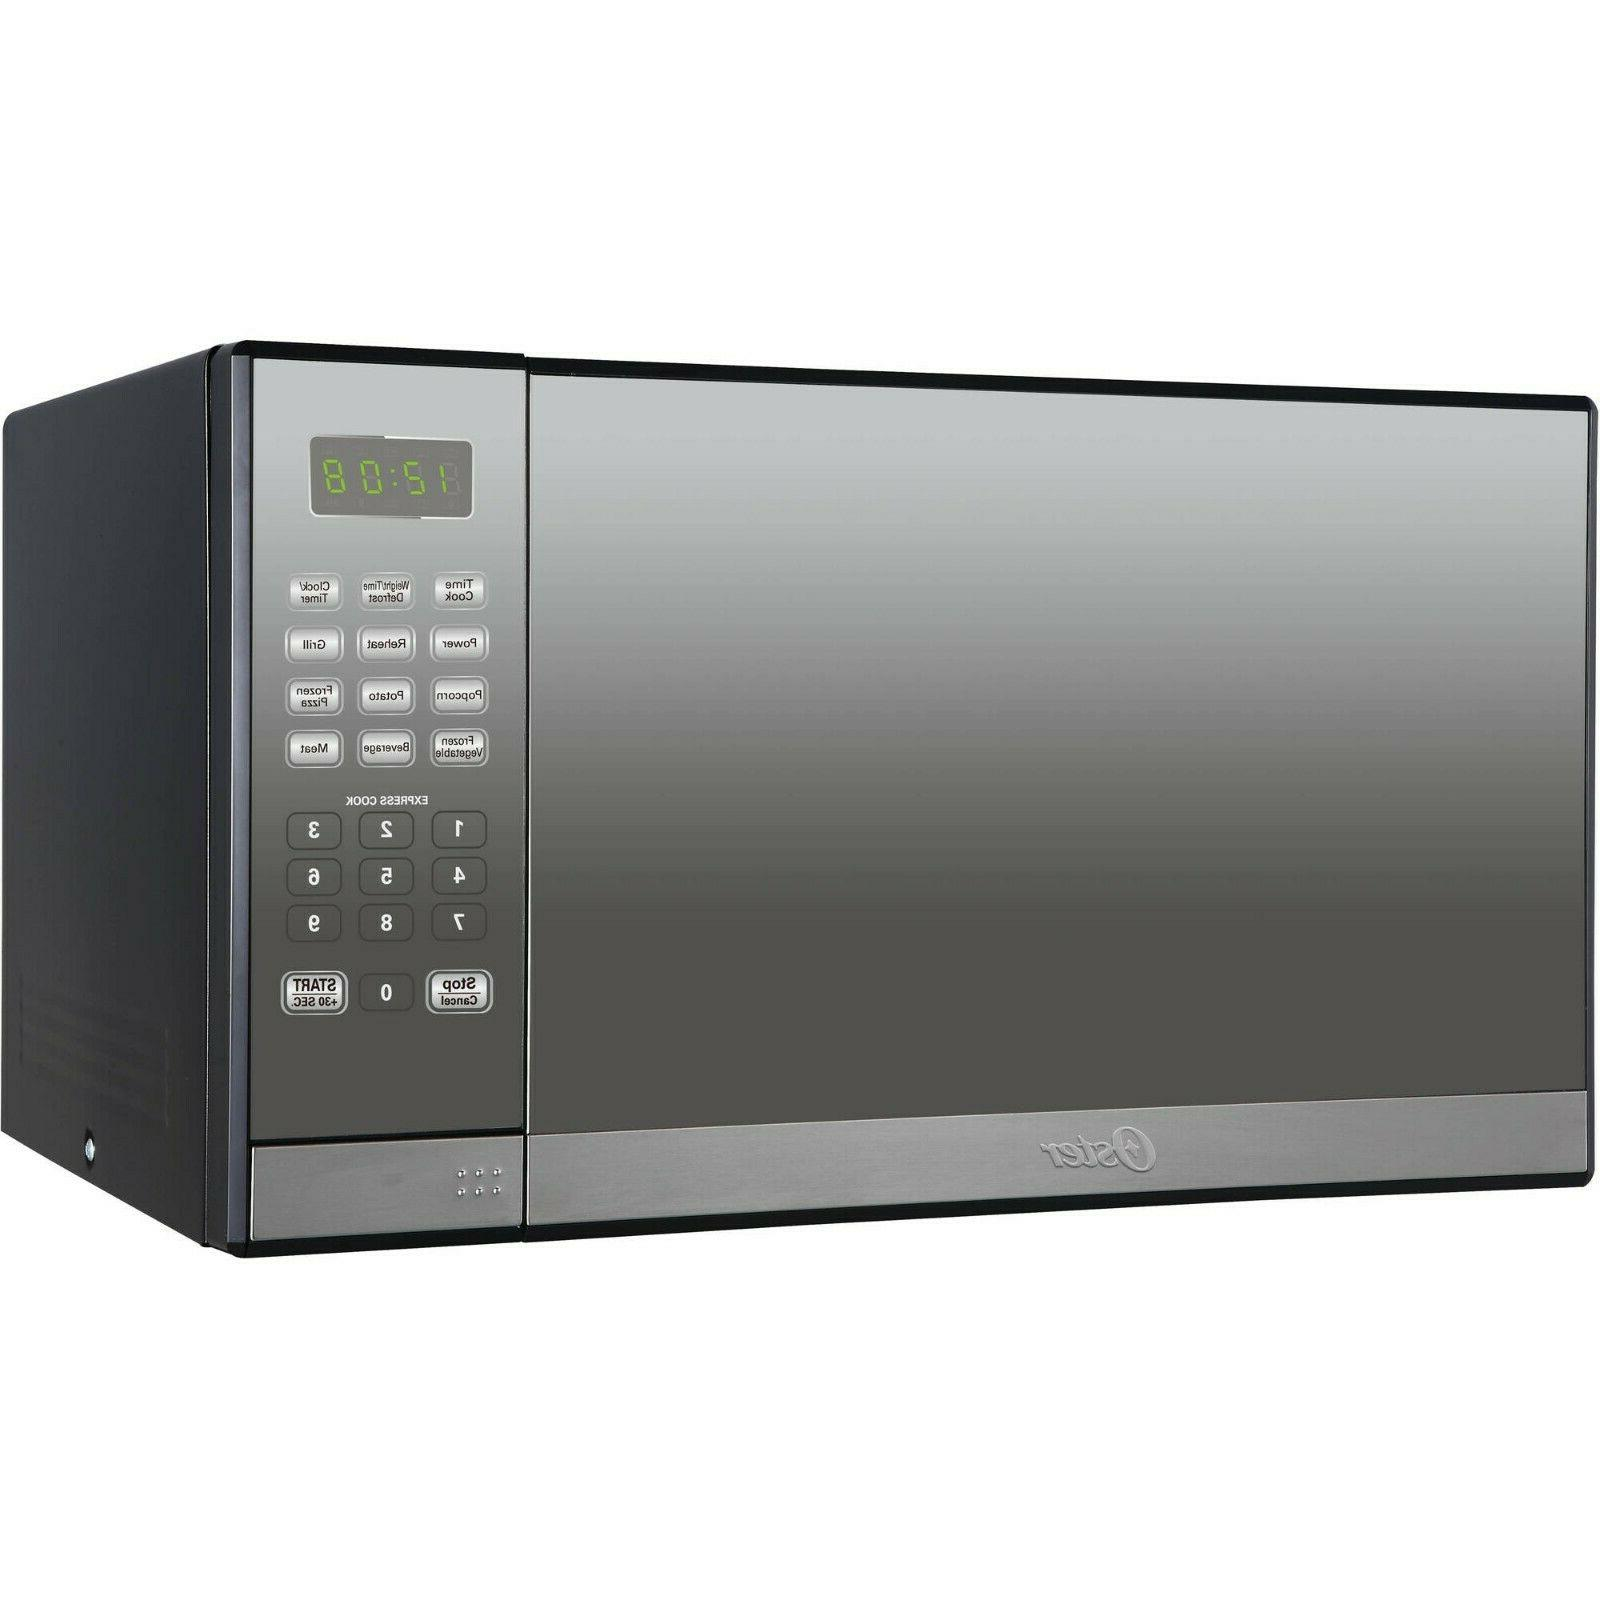 Oster 1.3 Cu. Stainless Steel with Mirror Finish Microwave Oven Grill